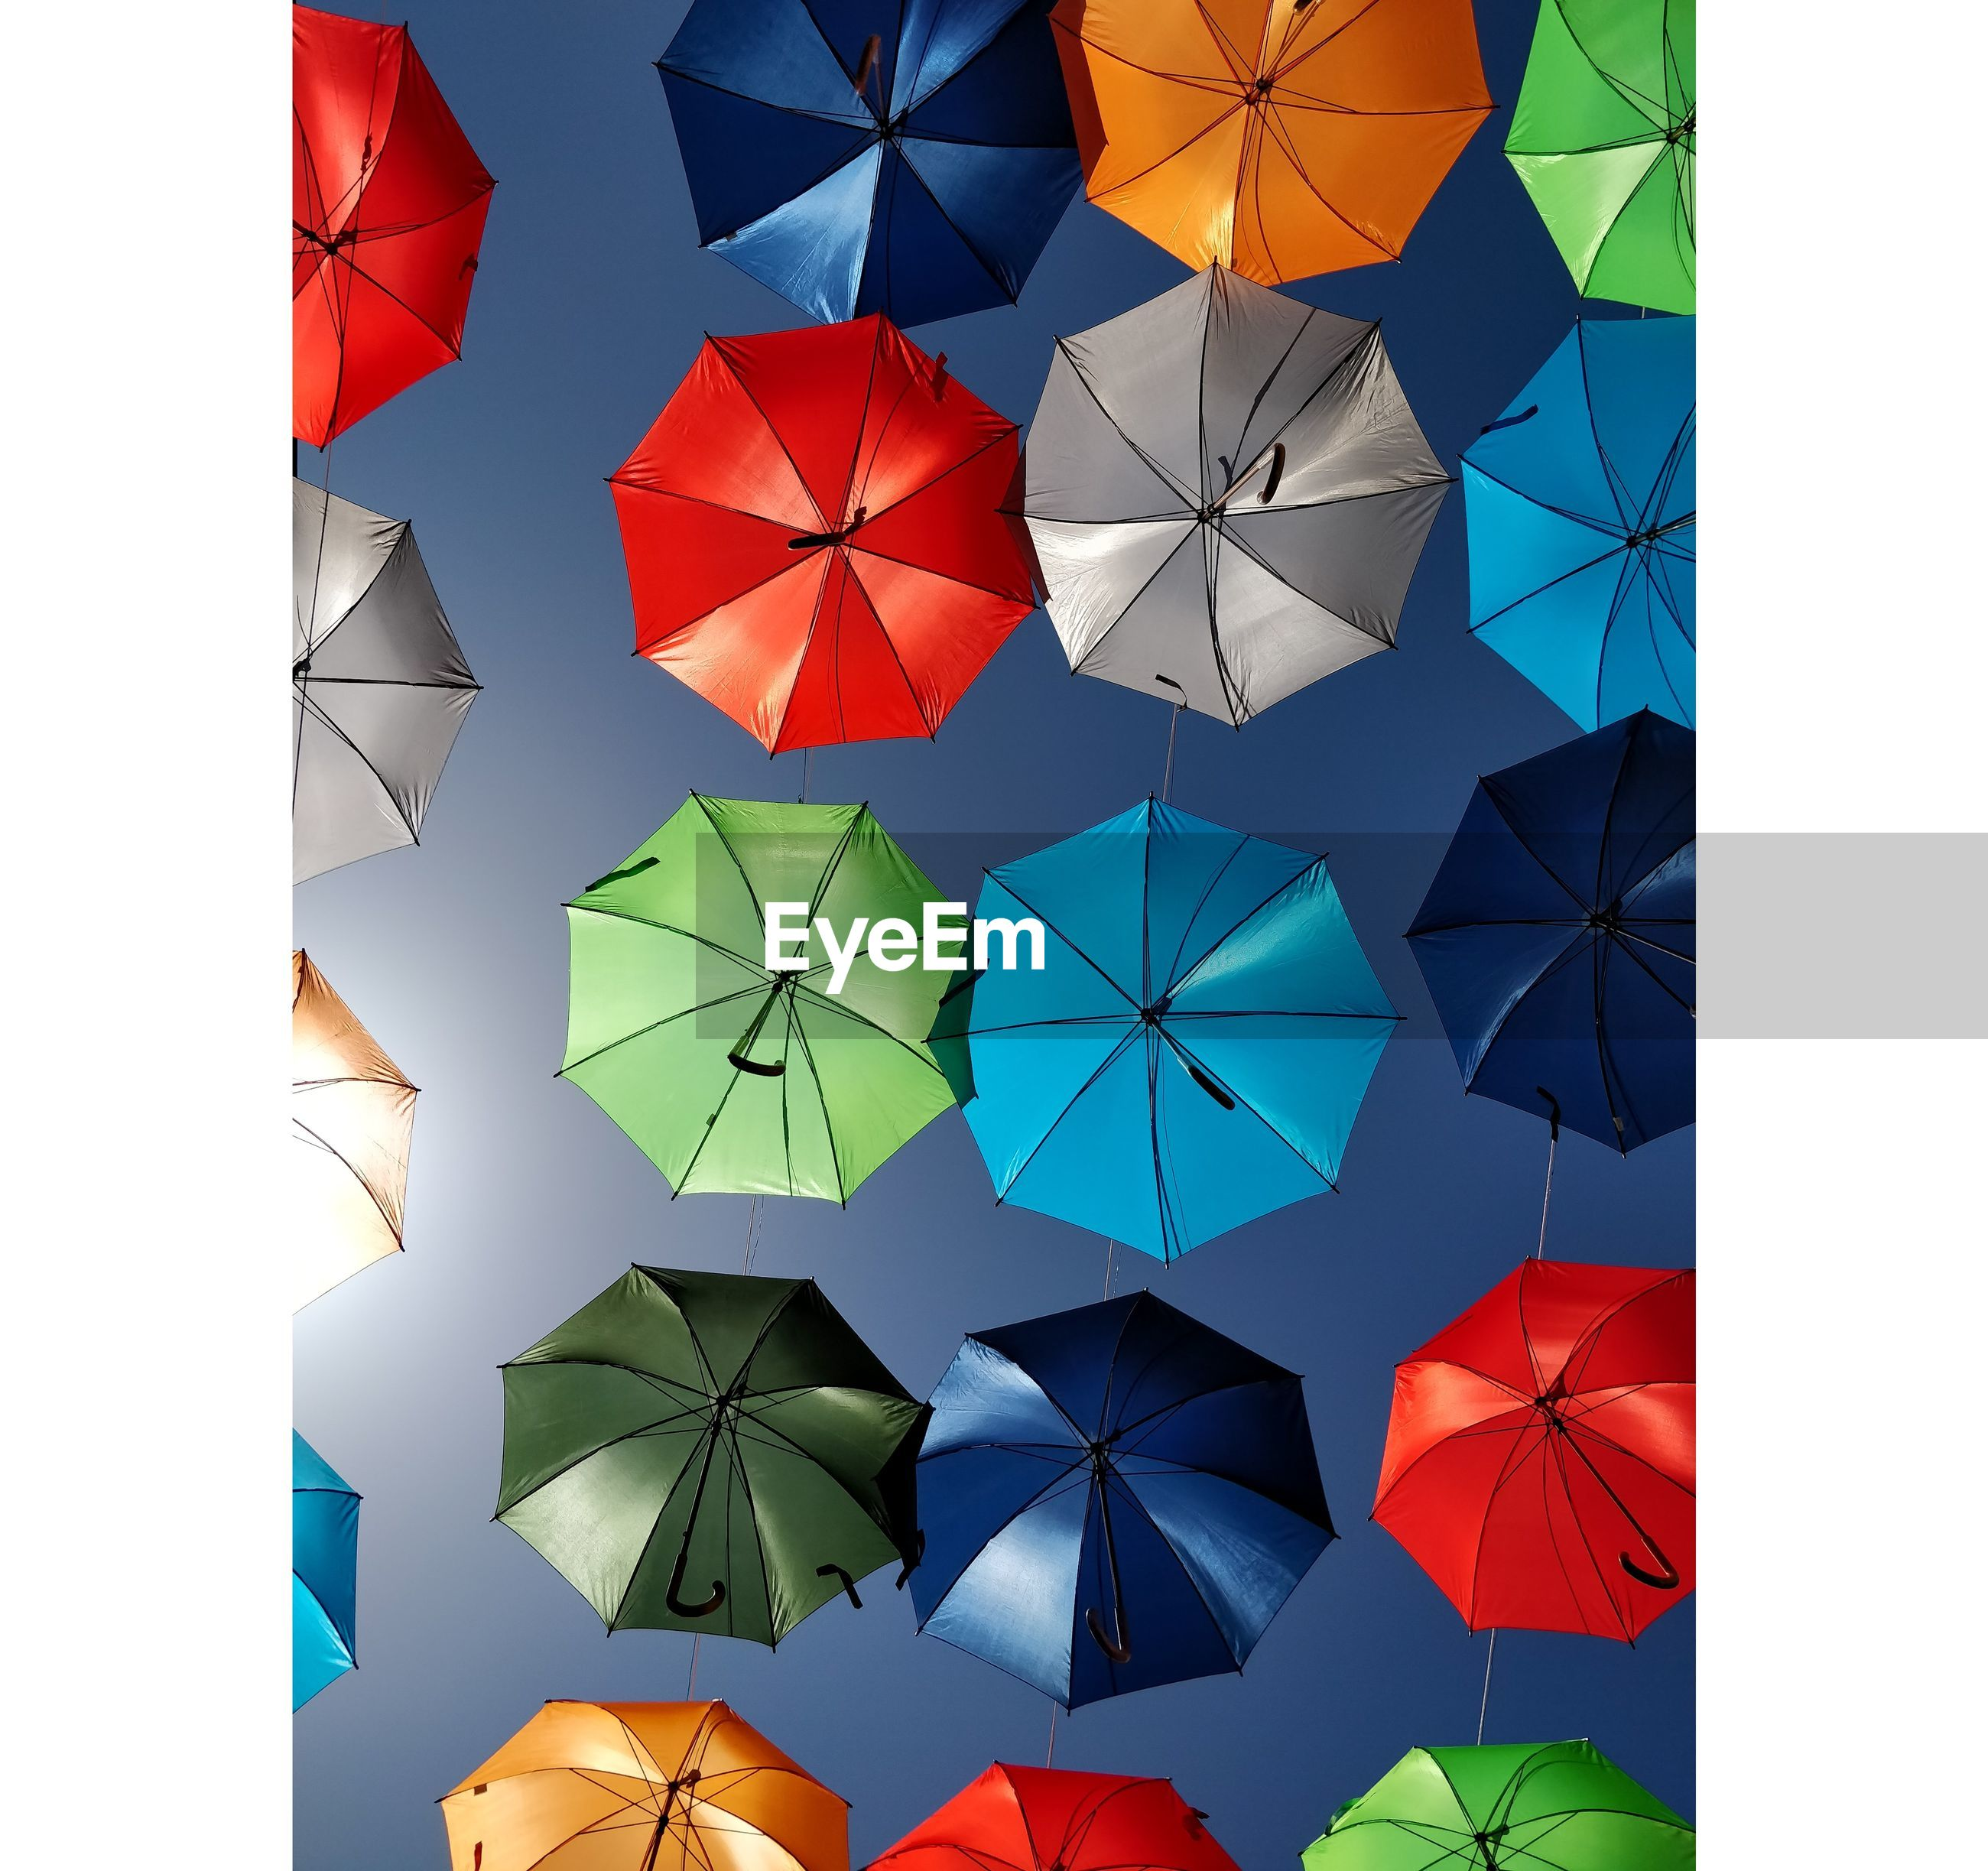 Directly below shot of colorful umbrellas hanging against clear sky